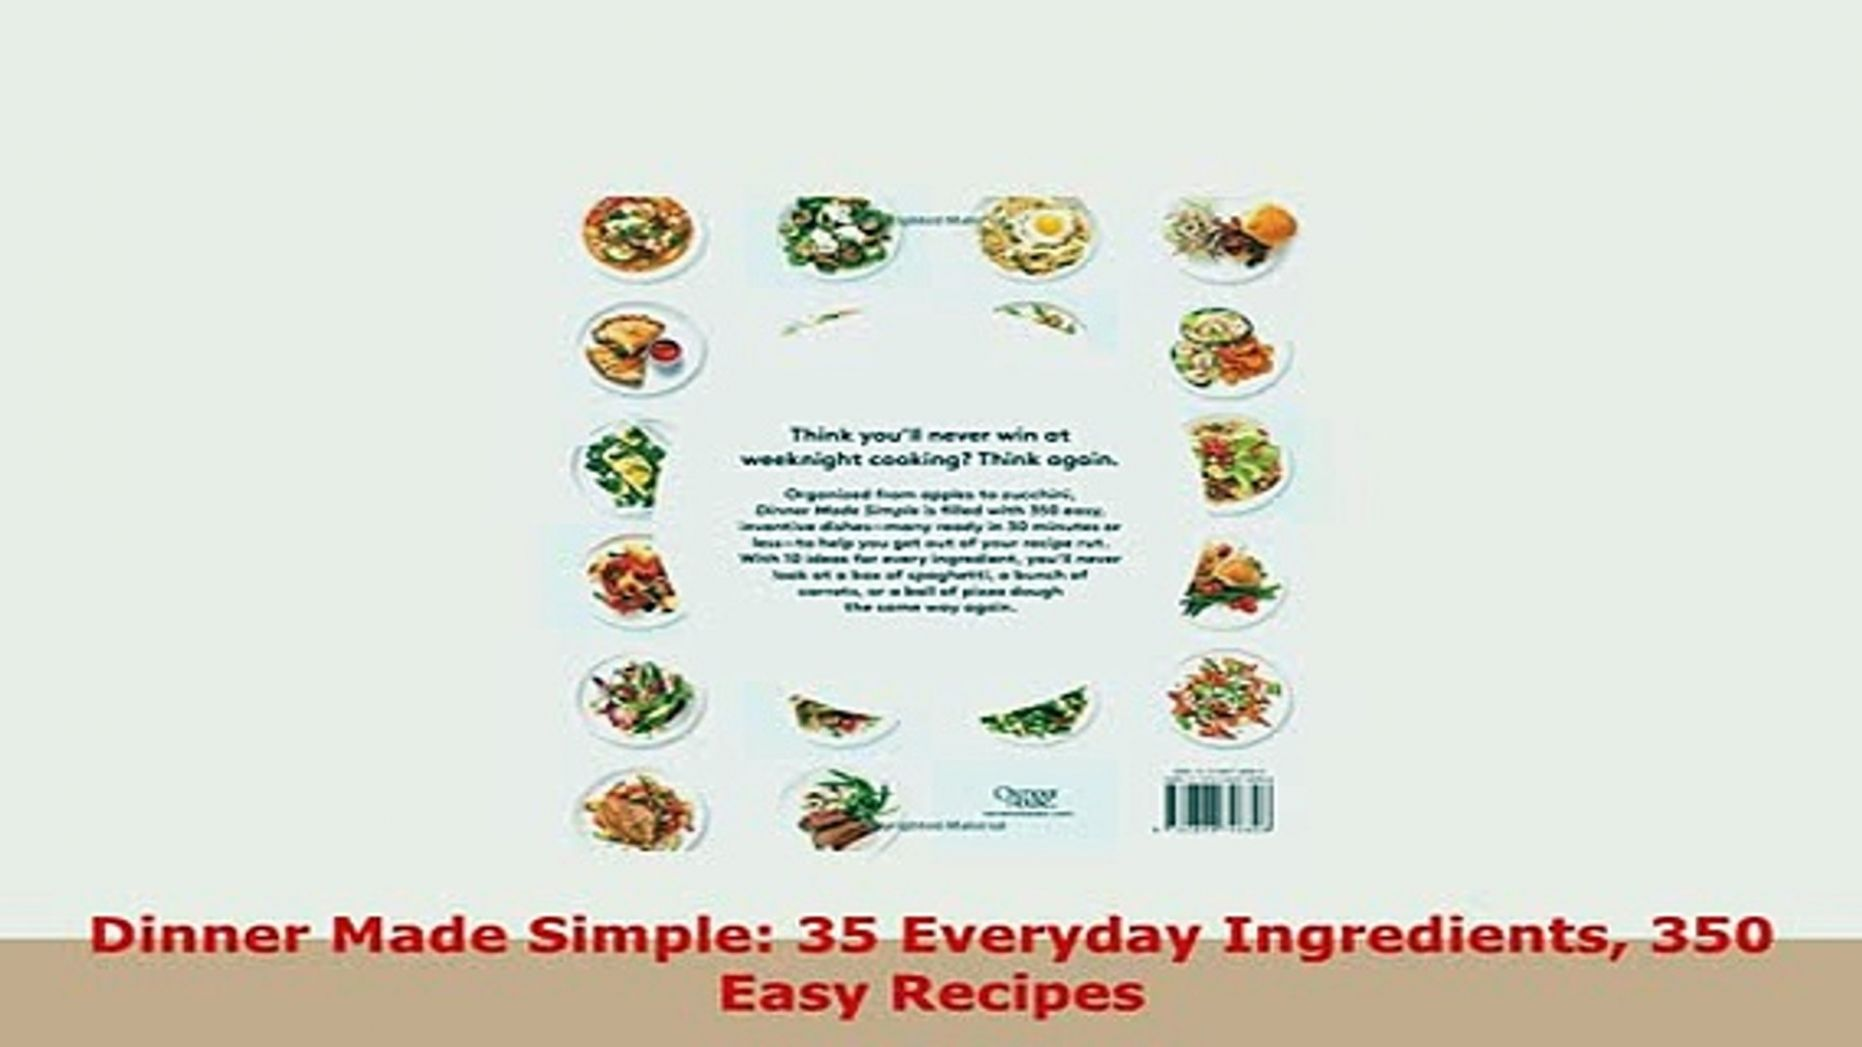 Download Dinner Made Simple 10 Everyday Ingredients 100 Easy Recipes PDF  Online - Easy Recipes Everyday Ingredients